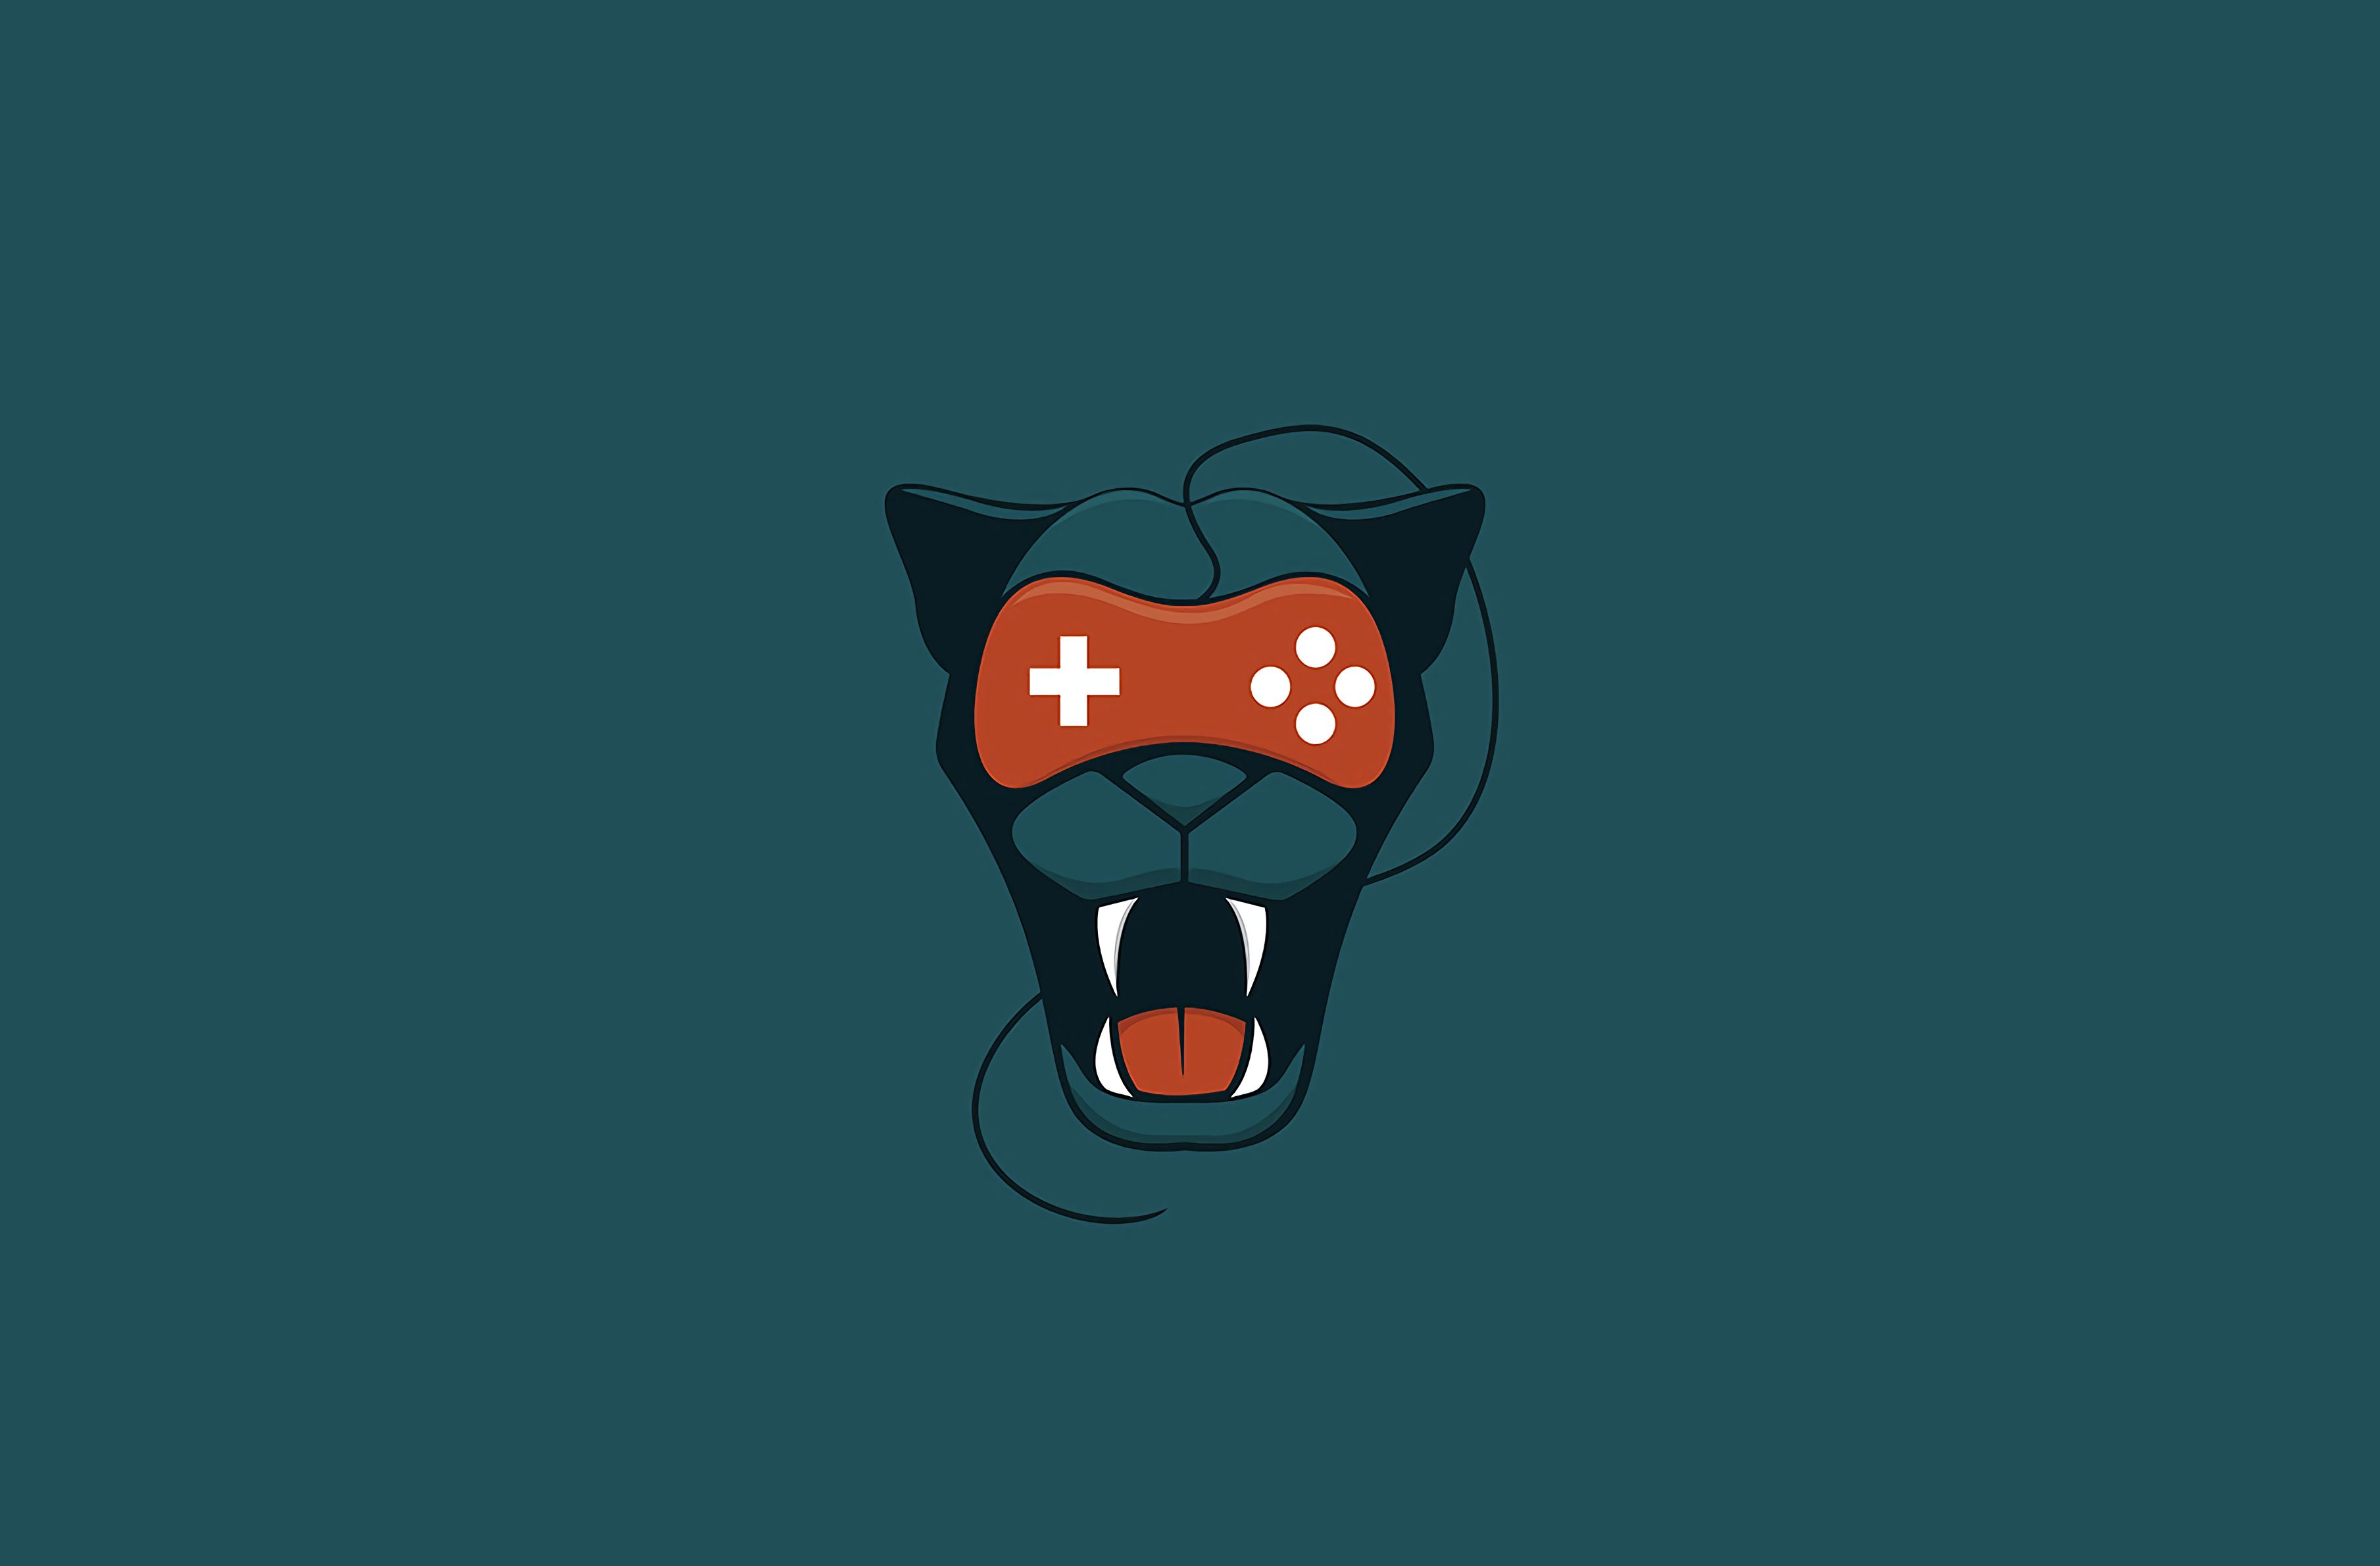 123272 download wallpaper Art, Puma, Grin, Minimalism, Joystick screensavers and pictures for free